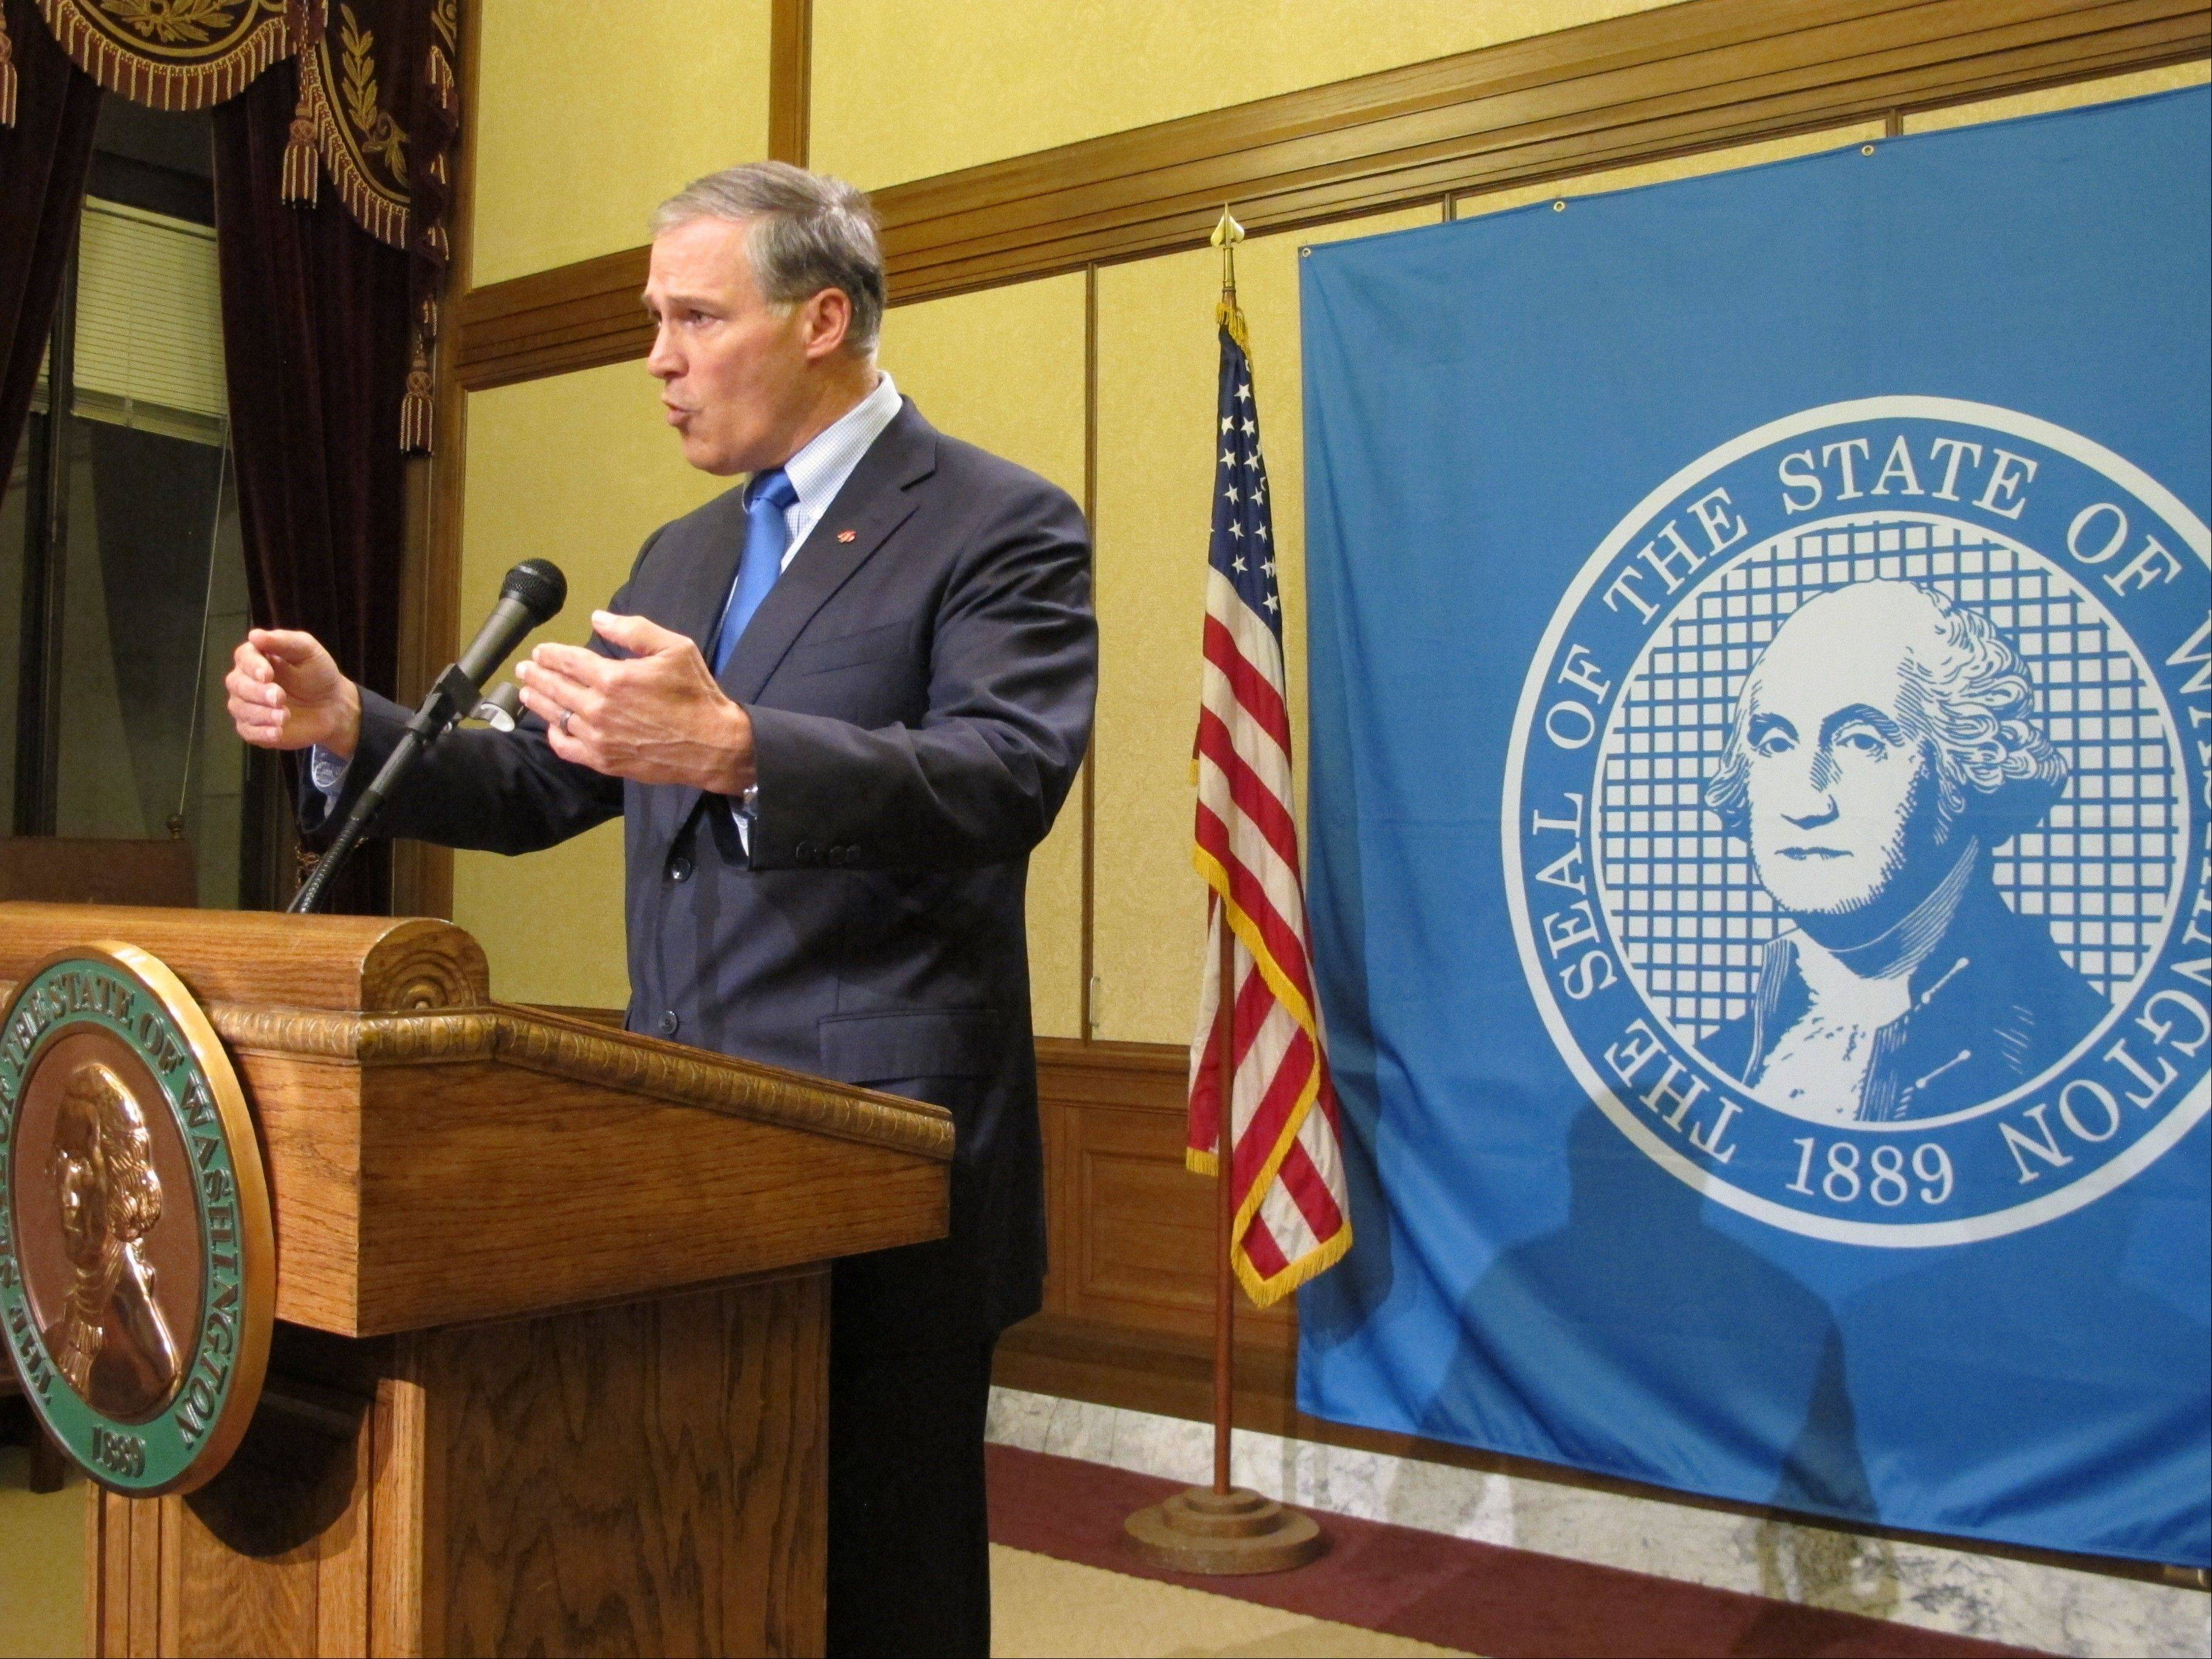 Gov. Jay Inslee speaks to reporters in Olympia, Wash. after Boeing machinists rejected an eight-year contract proposal Wednesday.